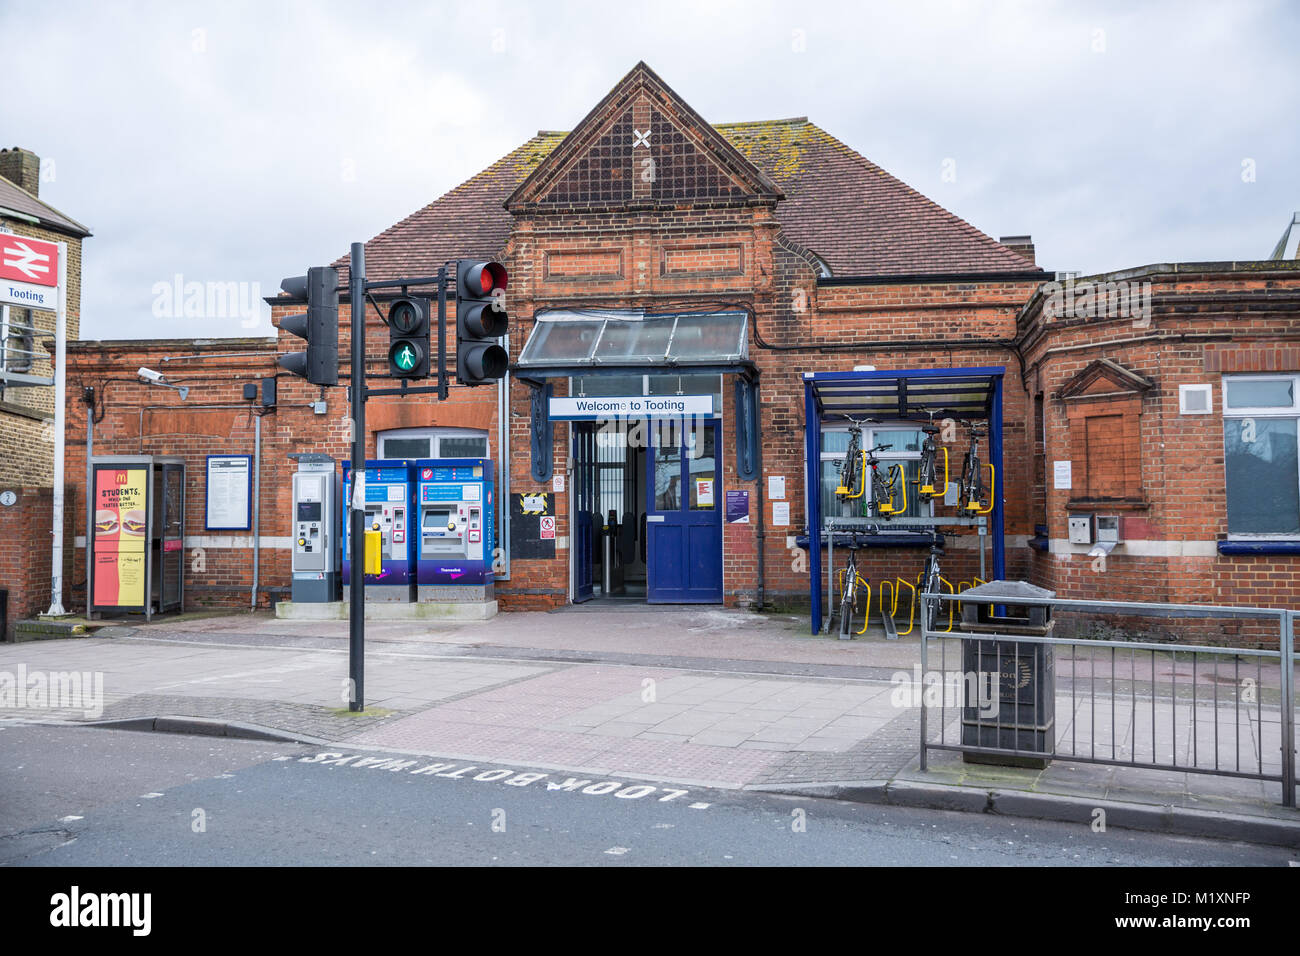 Tooting Stock Photos Amp Tooting Stock Images Alamy